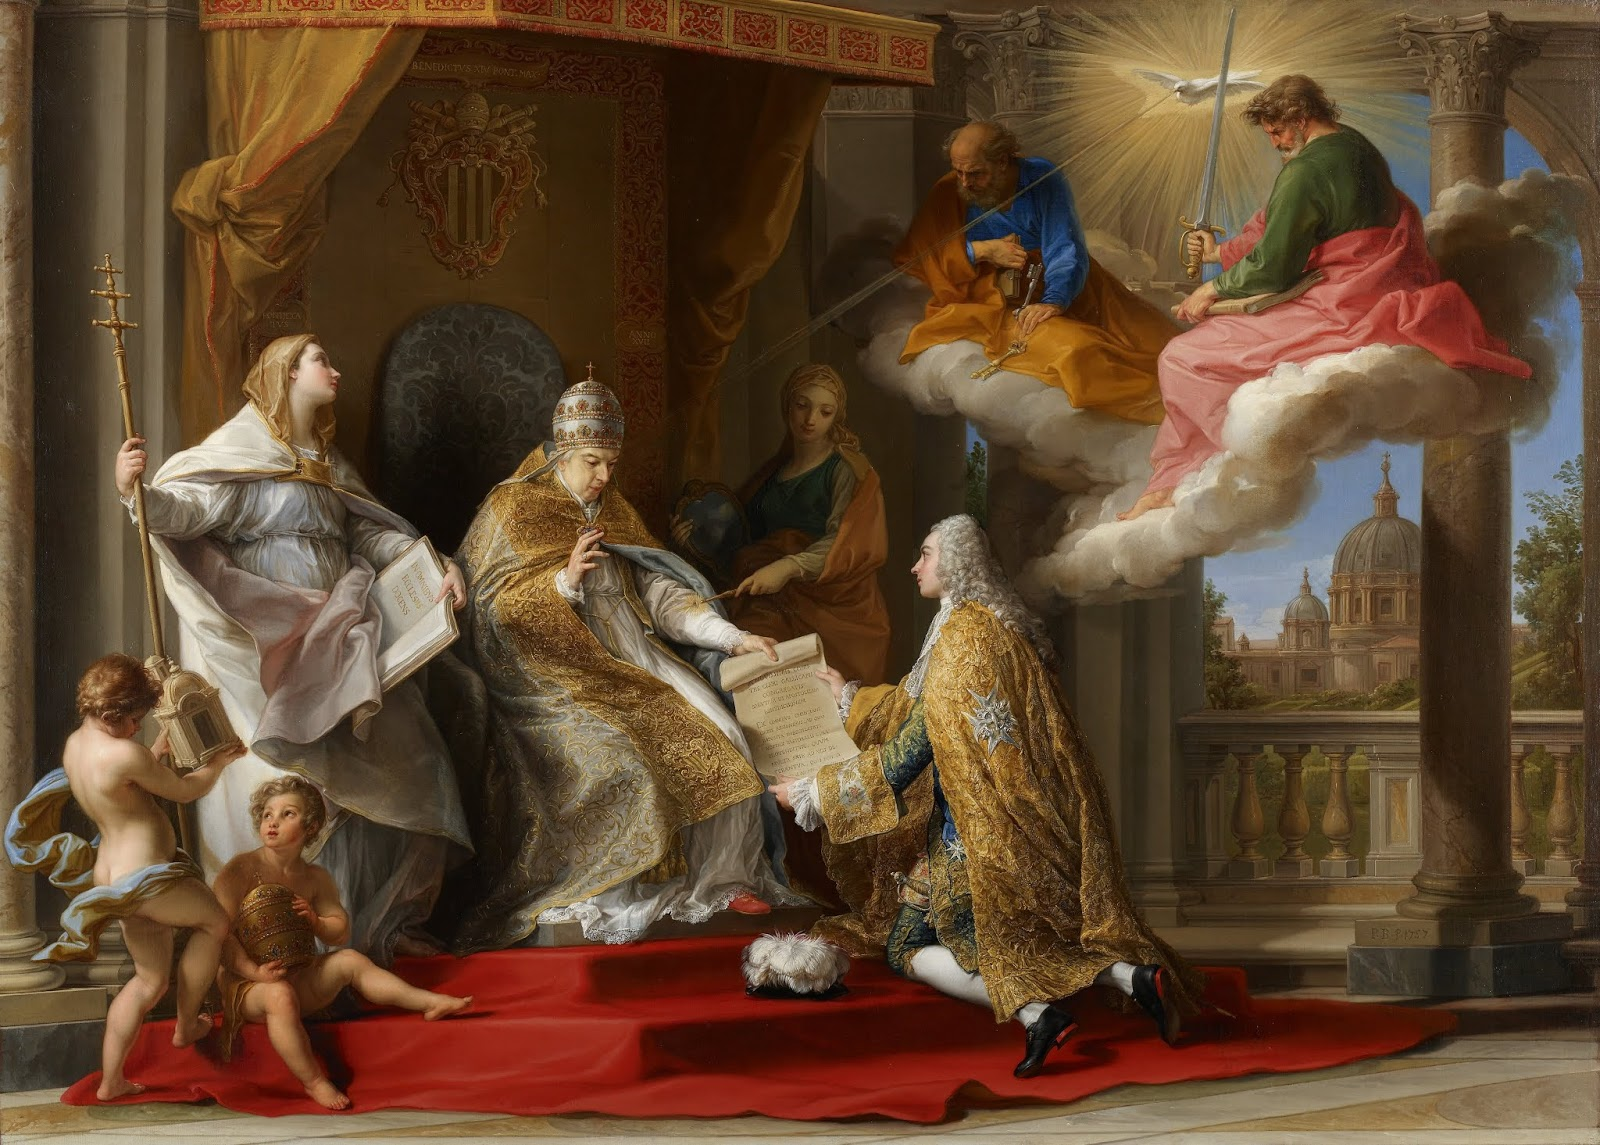 New Liturgical Movement: The Need for Mutual Humility and